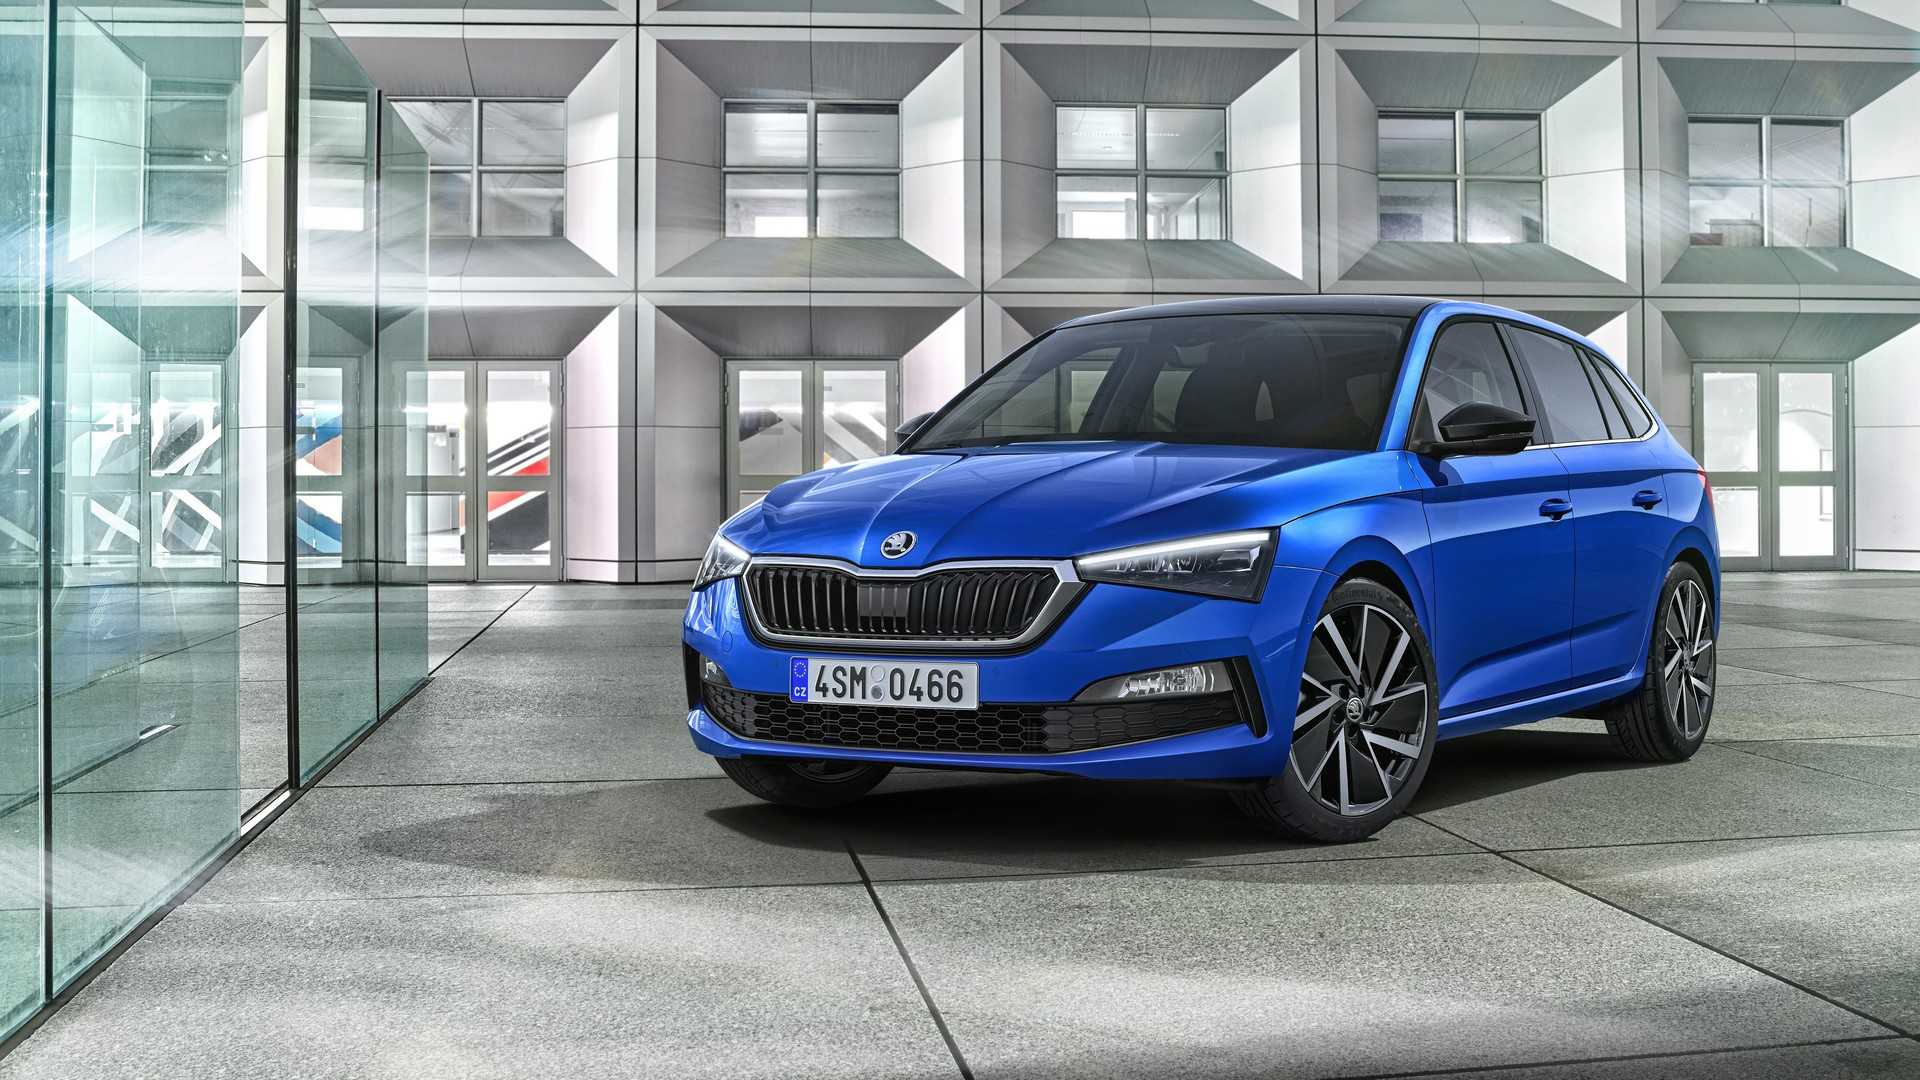 Scala gives Skoda a fresh start in the competitive small-car segment